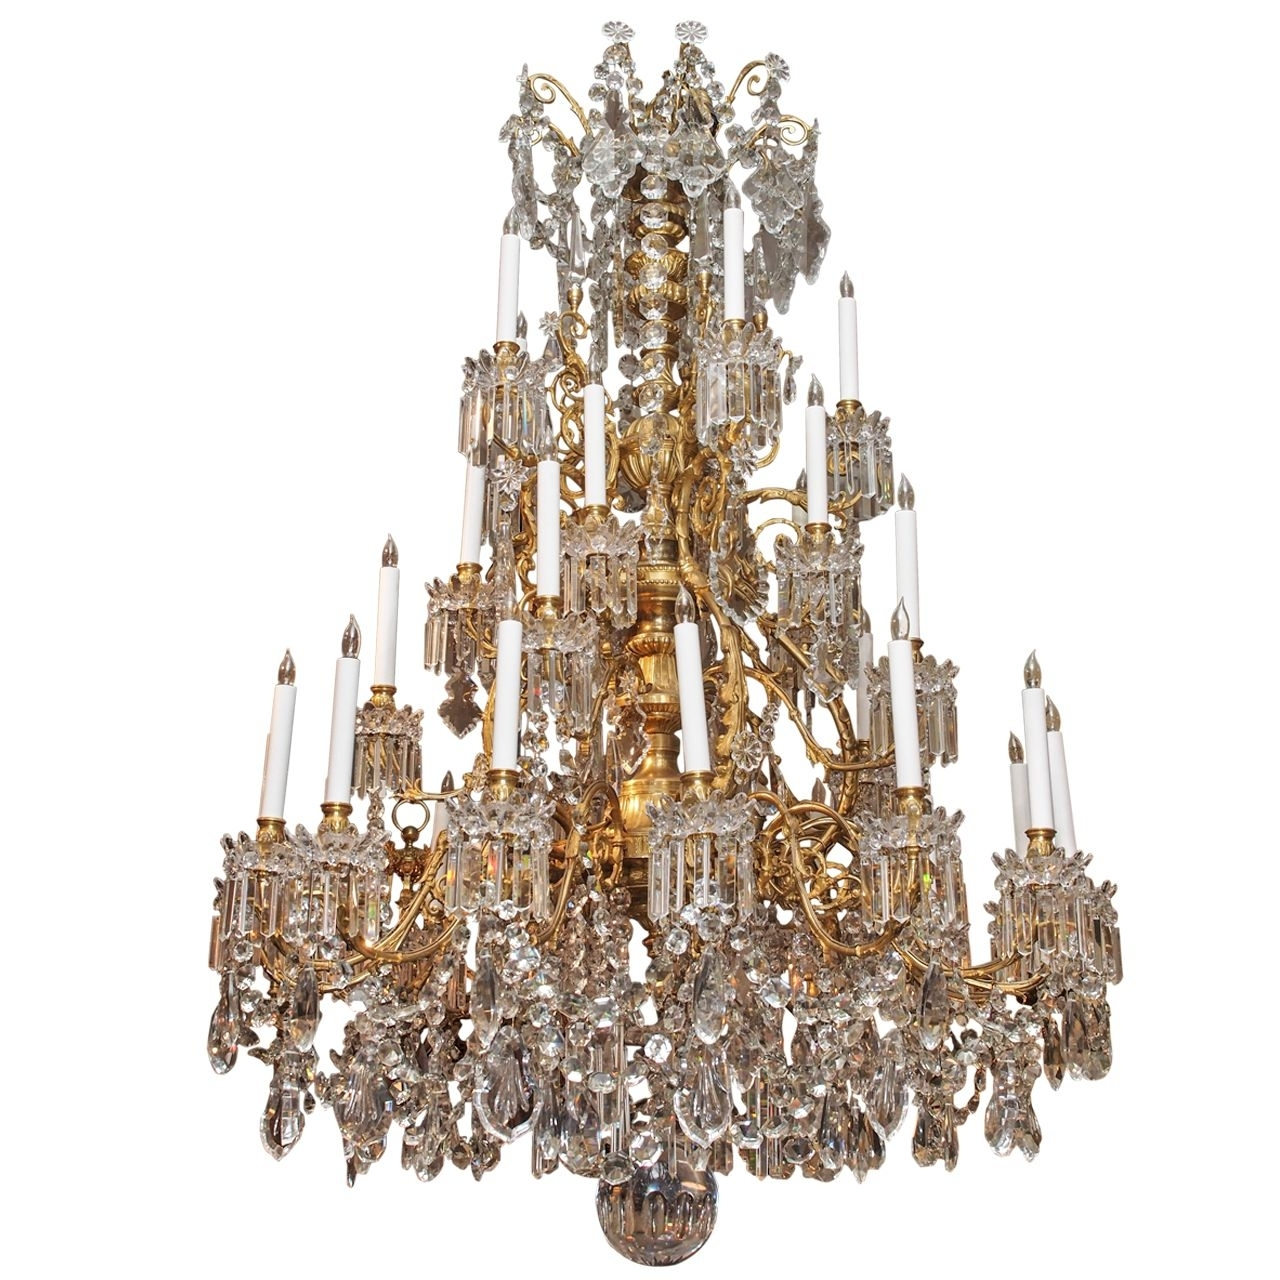 Magnificent Antique French Baccarat Crystal Chandelier Circa 1850 Intended For Favorite Antique Chandeliers (View 12 of 20)